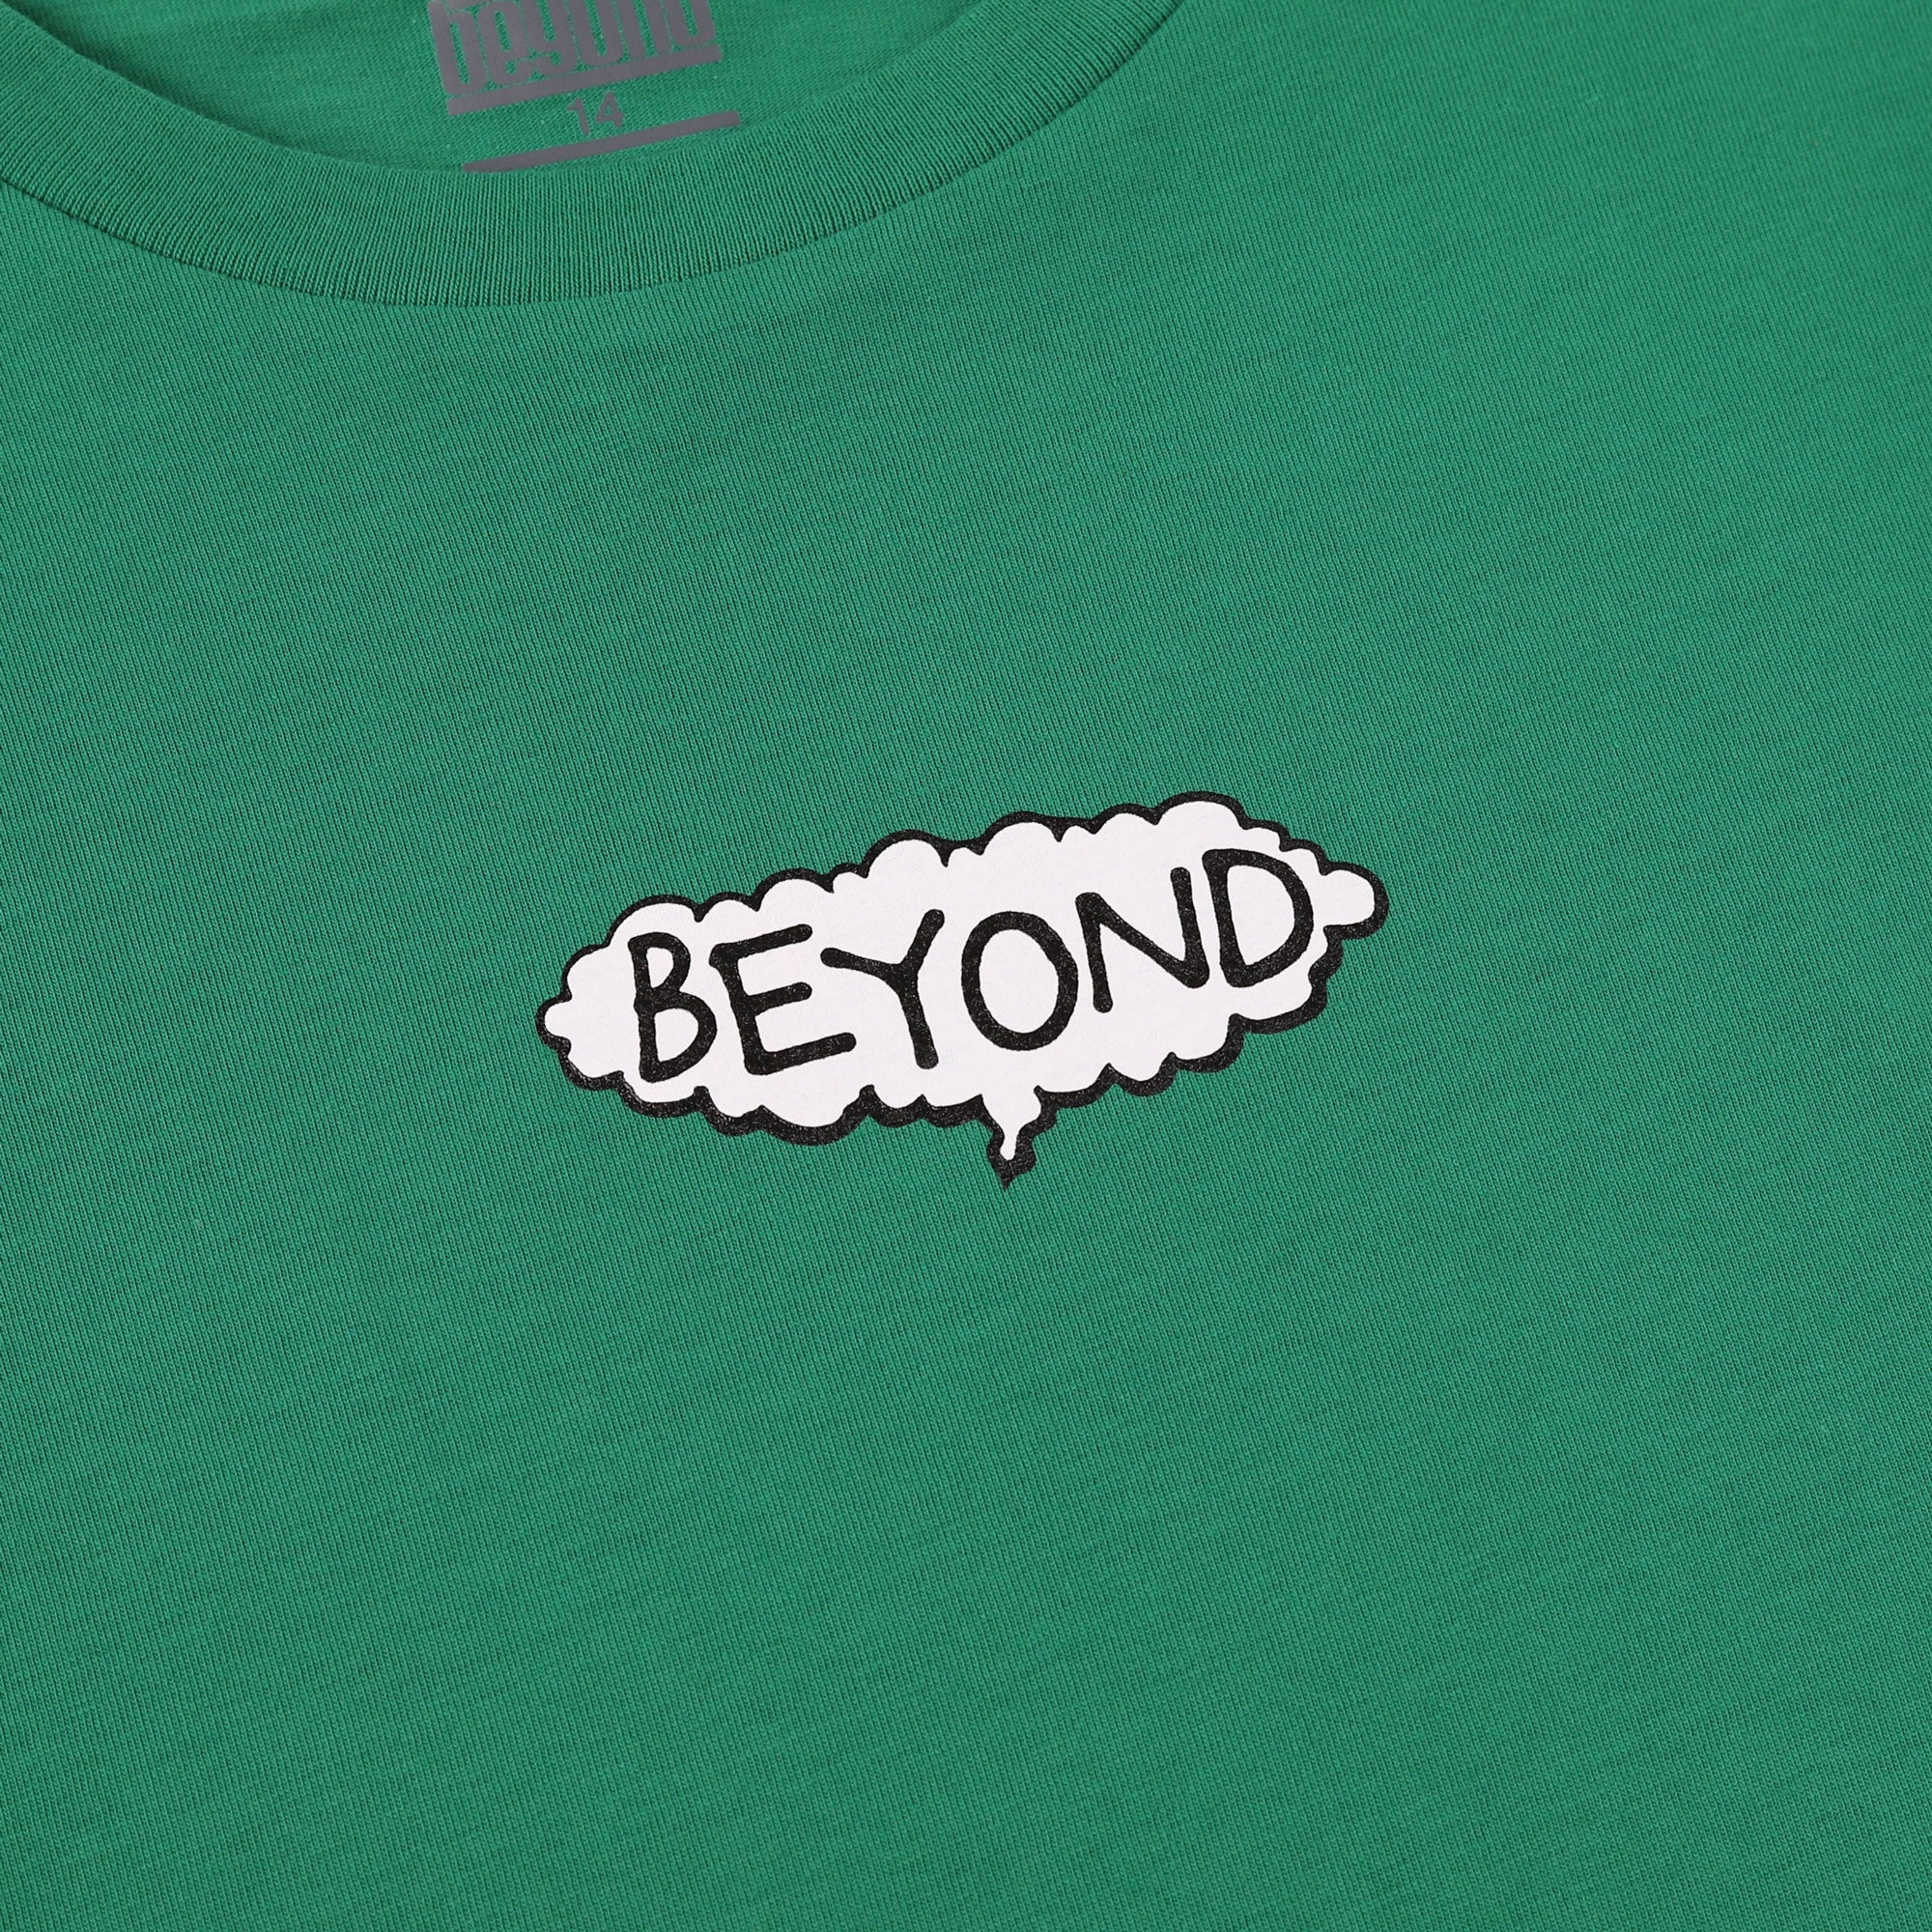 Beyond Comic Tee (Youth) Product Photo #2